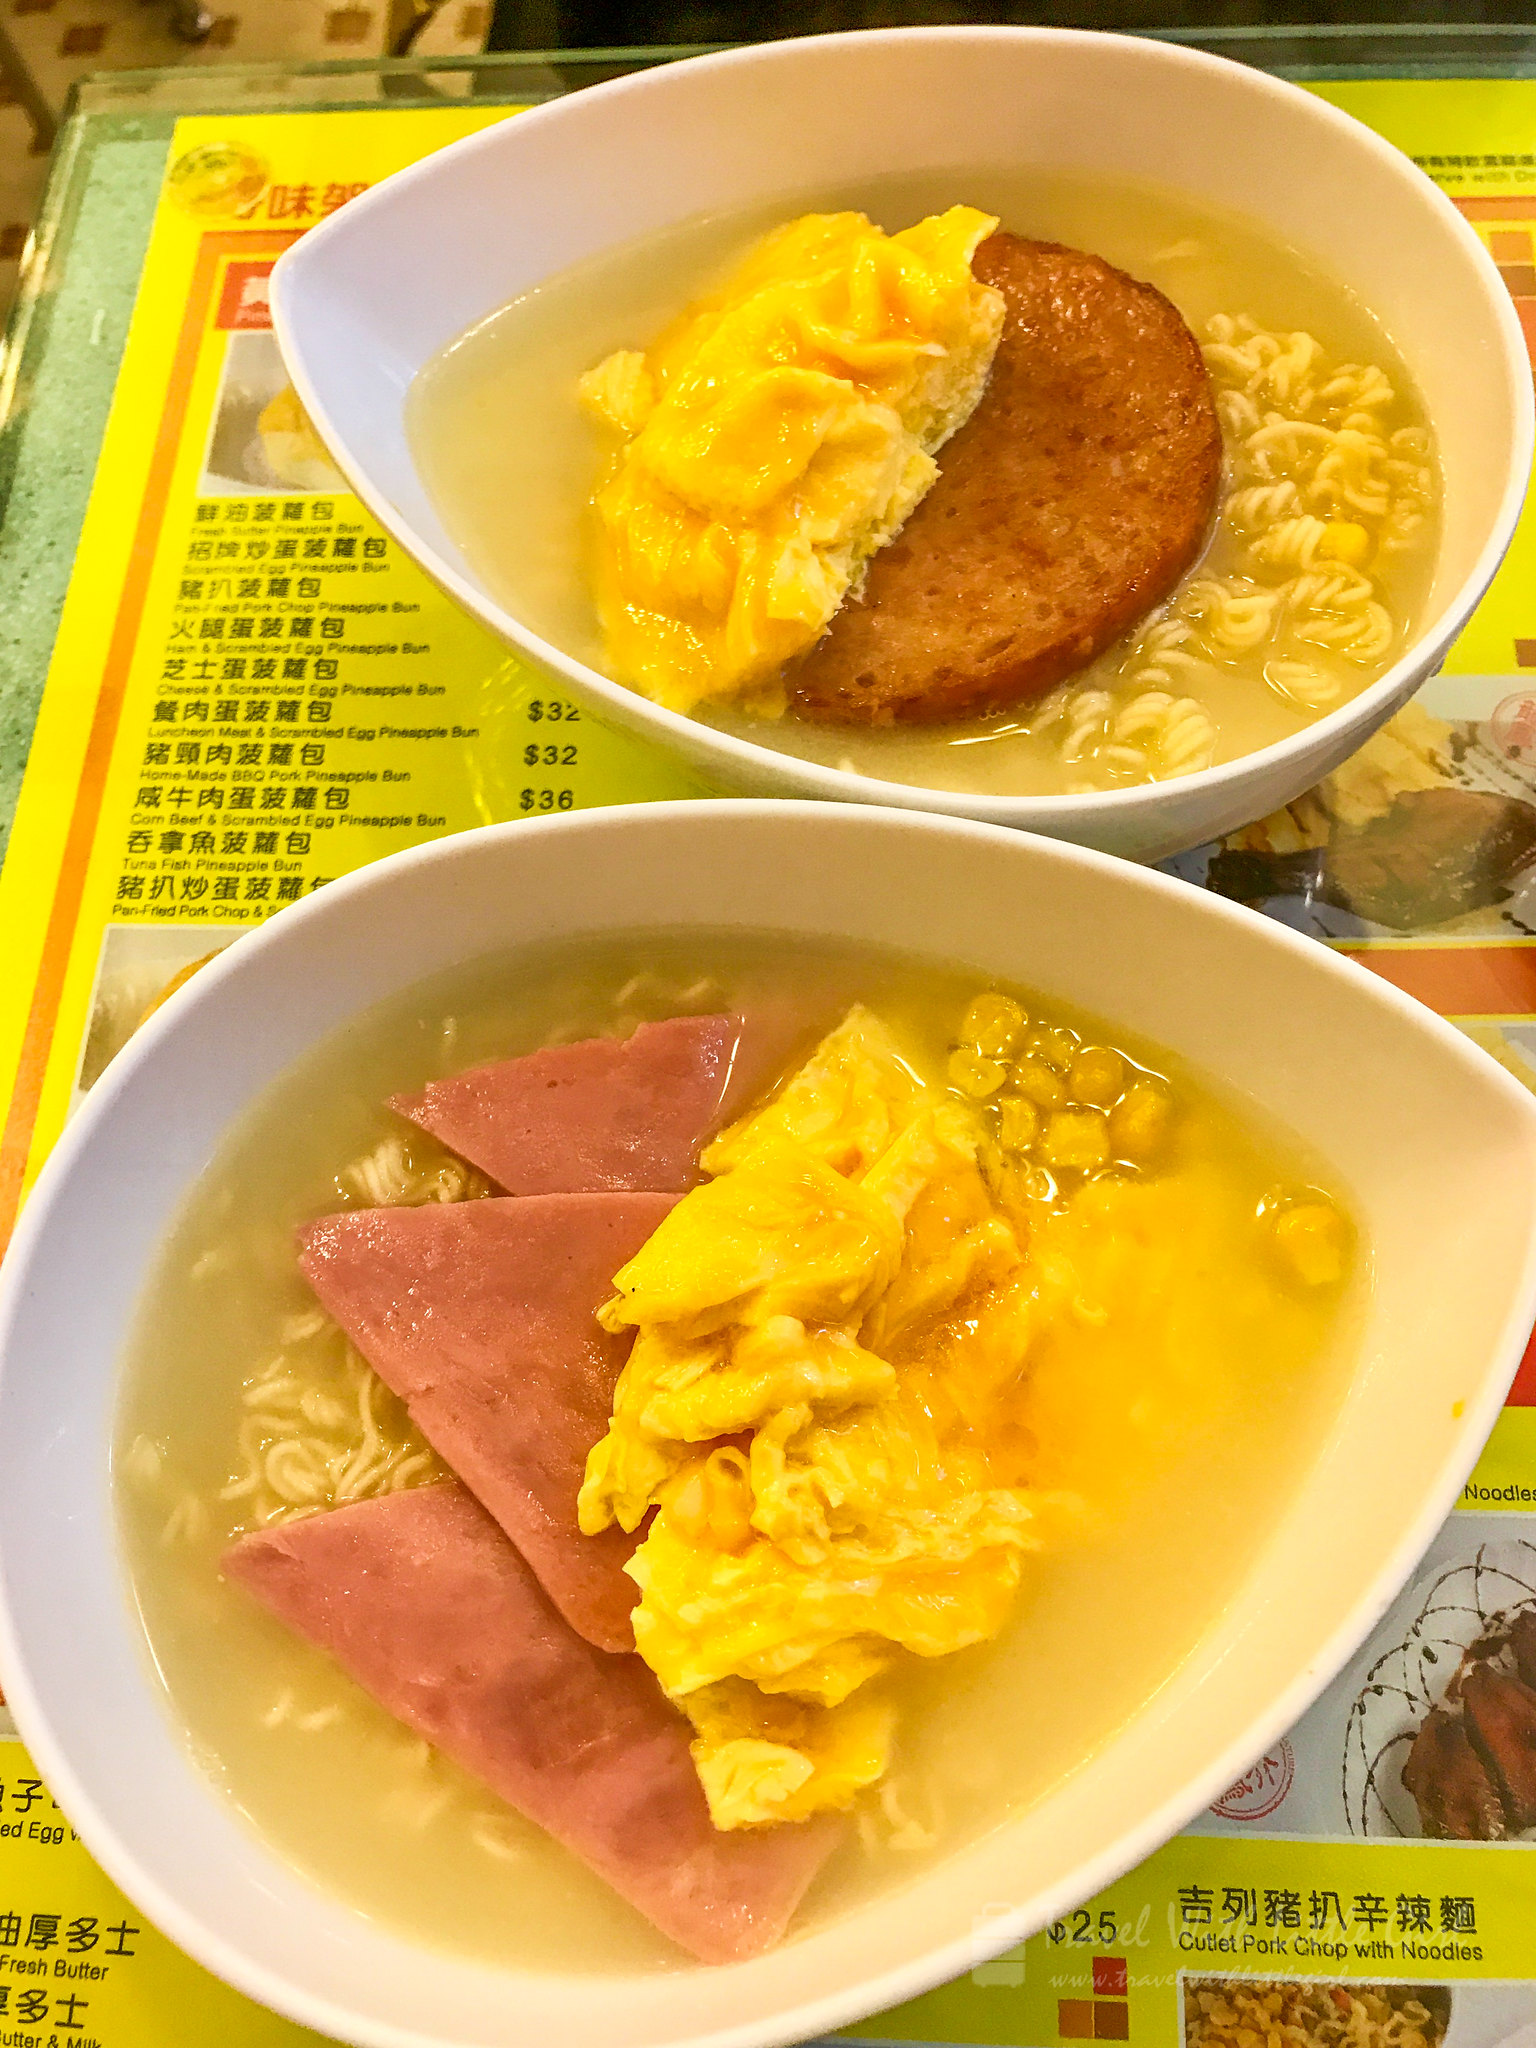 Luncheon meat or ham and scrambled egg with noodle with soup